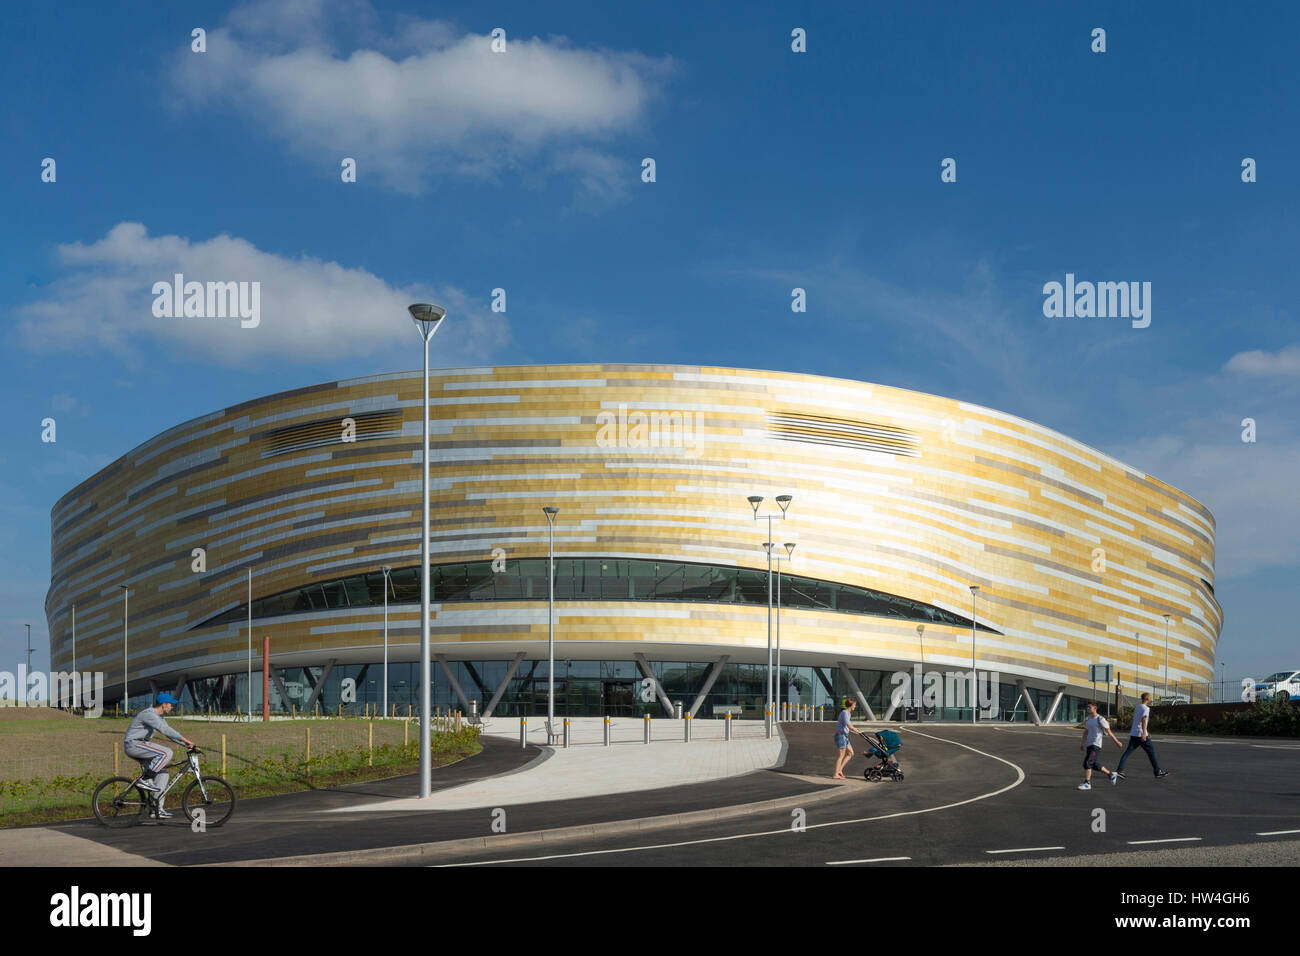 Exterior view of Derby Arena, UK. - Stock Image